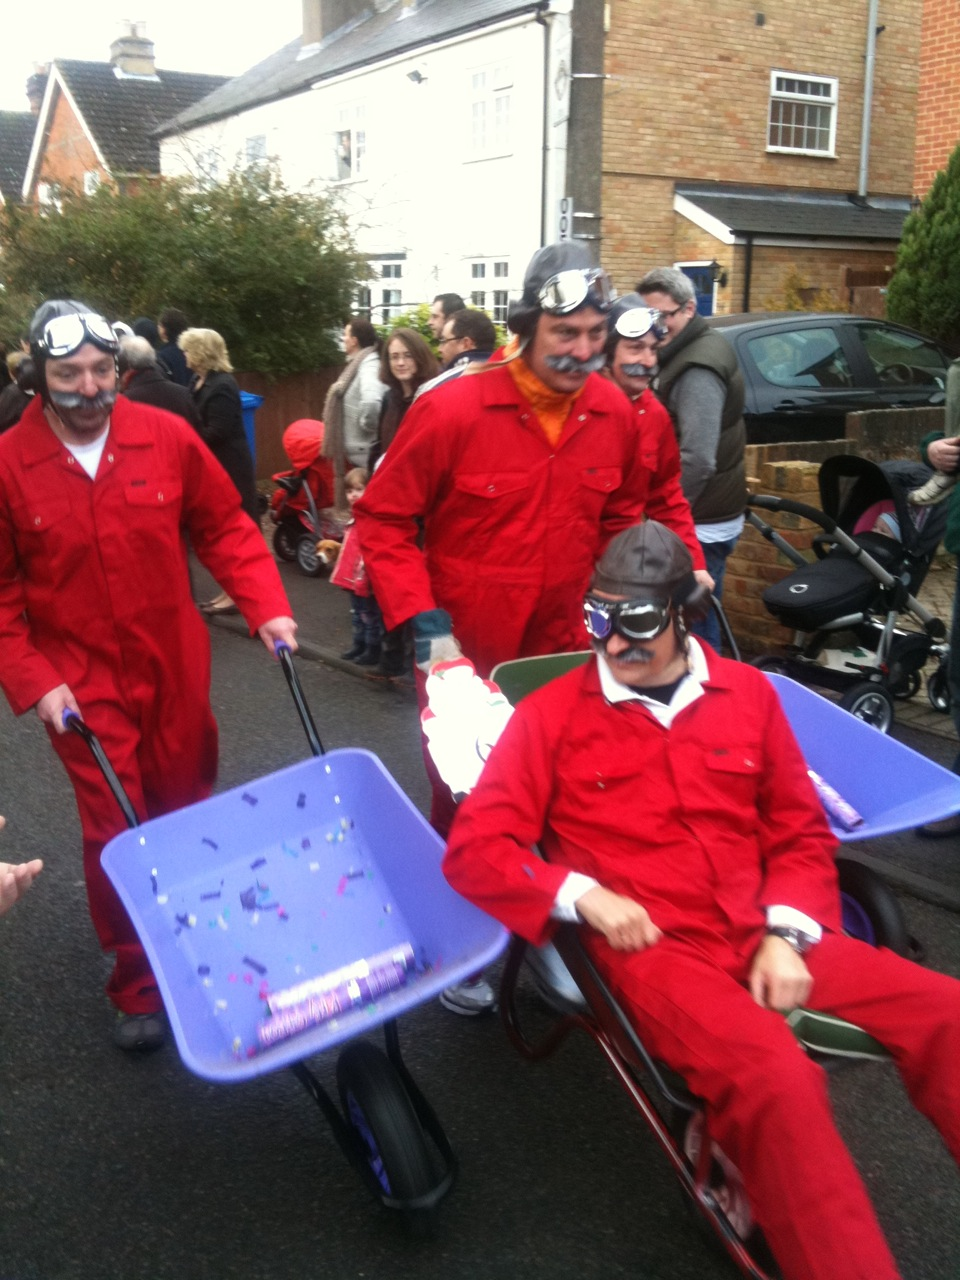 Sunninghill New Years Day wheel barrow race 2011...